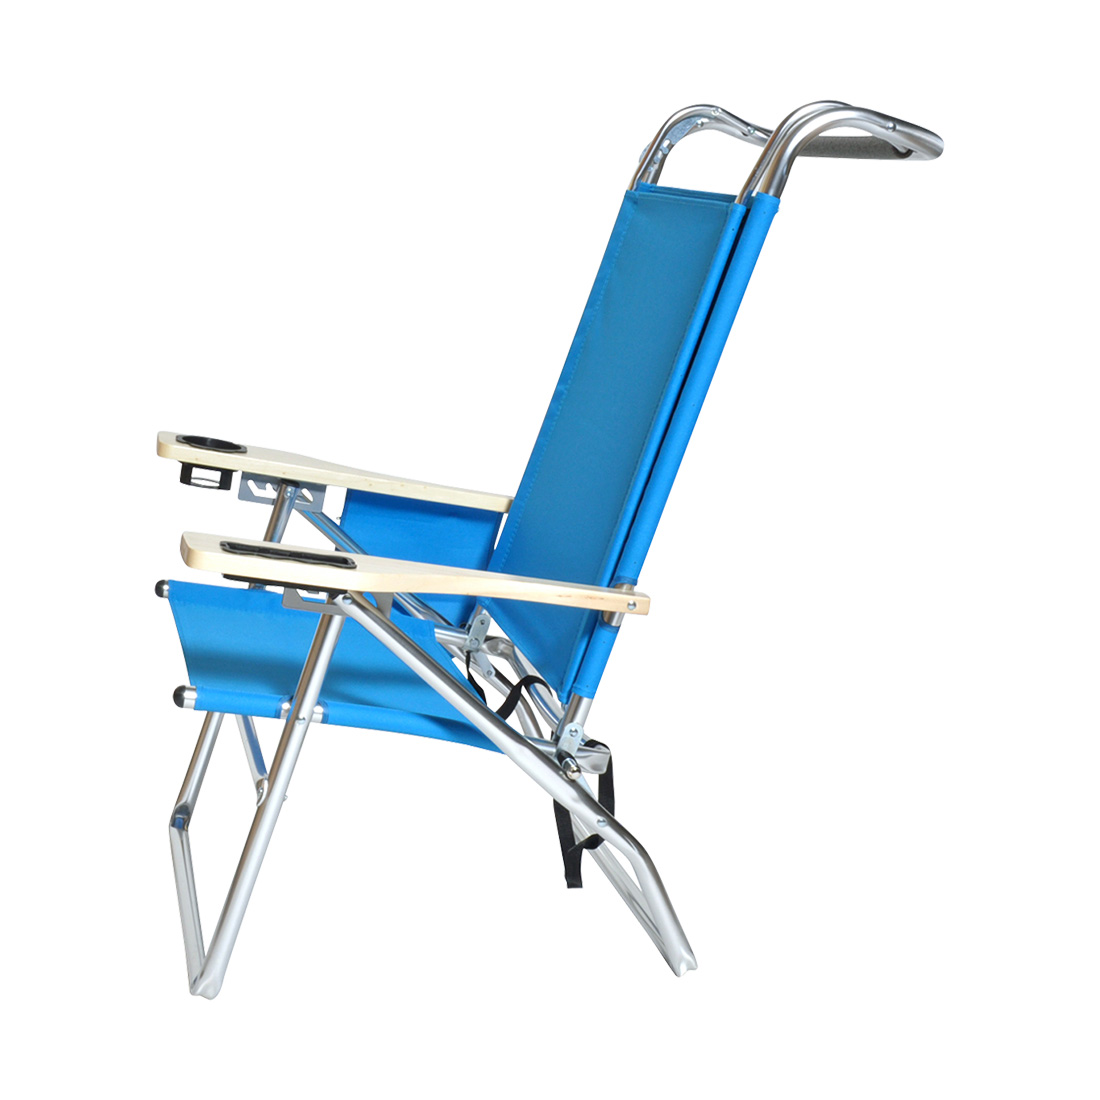 Beach Chair With Canopy And Cup Holder Deluxe 4 Position Aluminum Beach Chair W Canopy And Storage